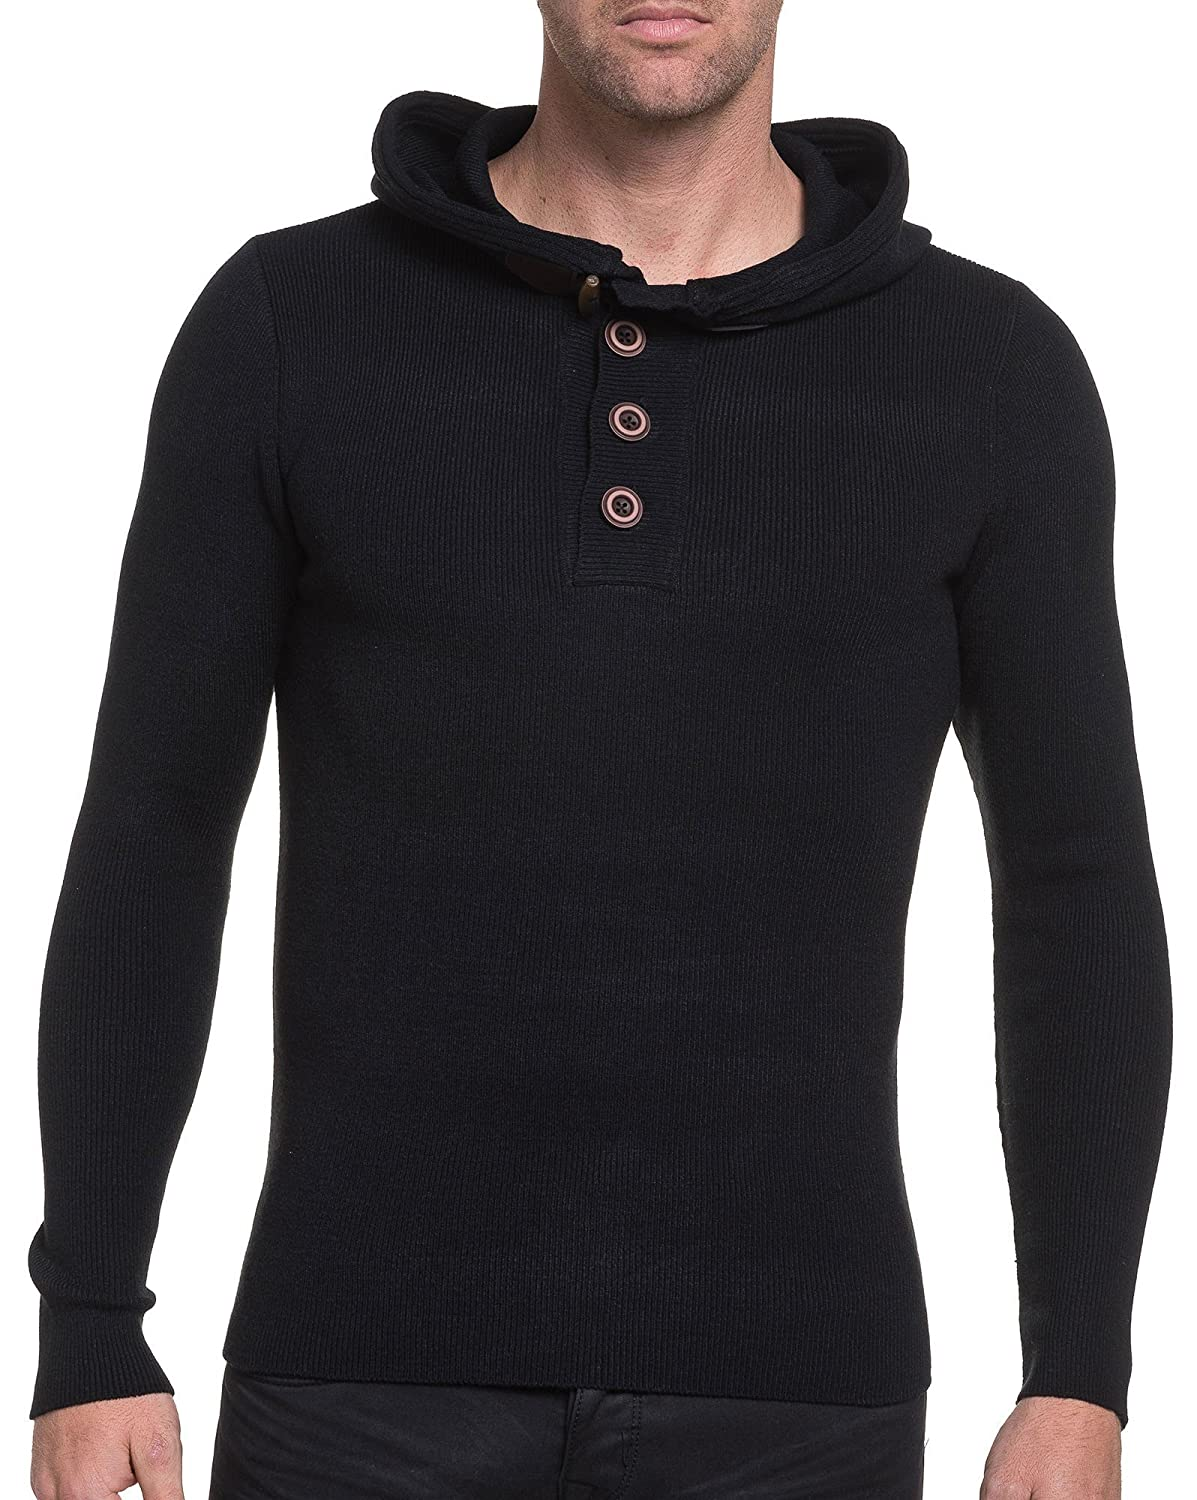 BLZ jeans - black ribbed sweater classic hooded man